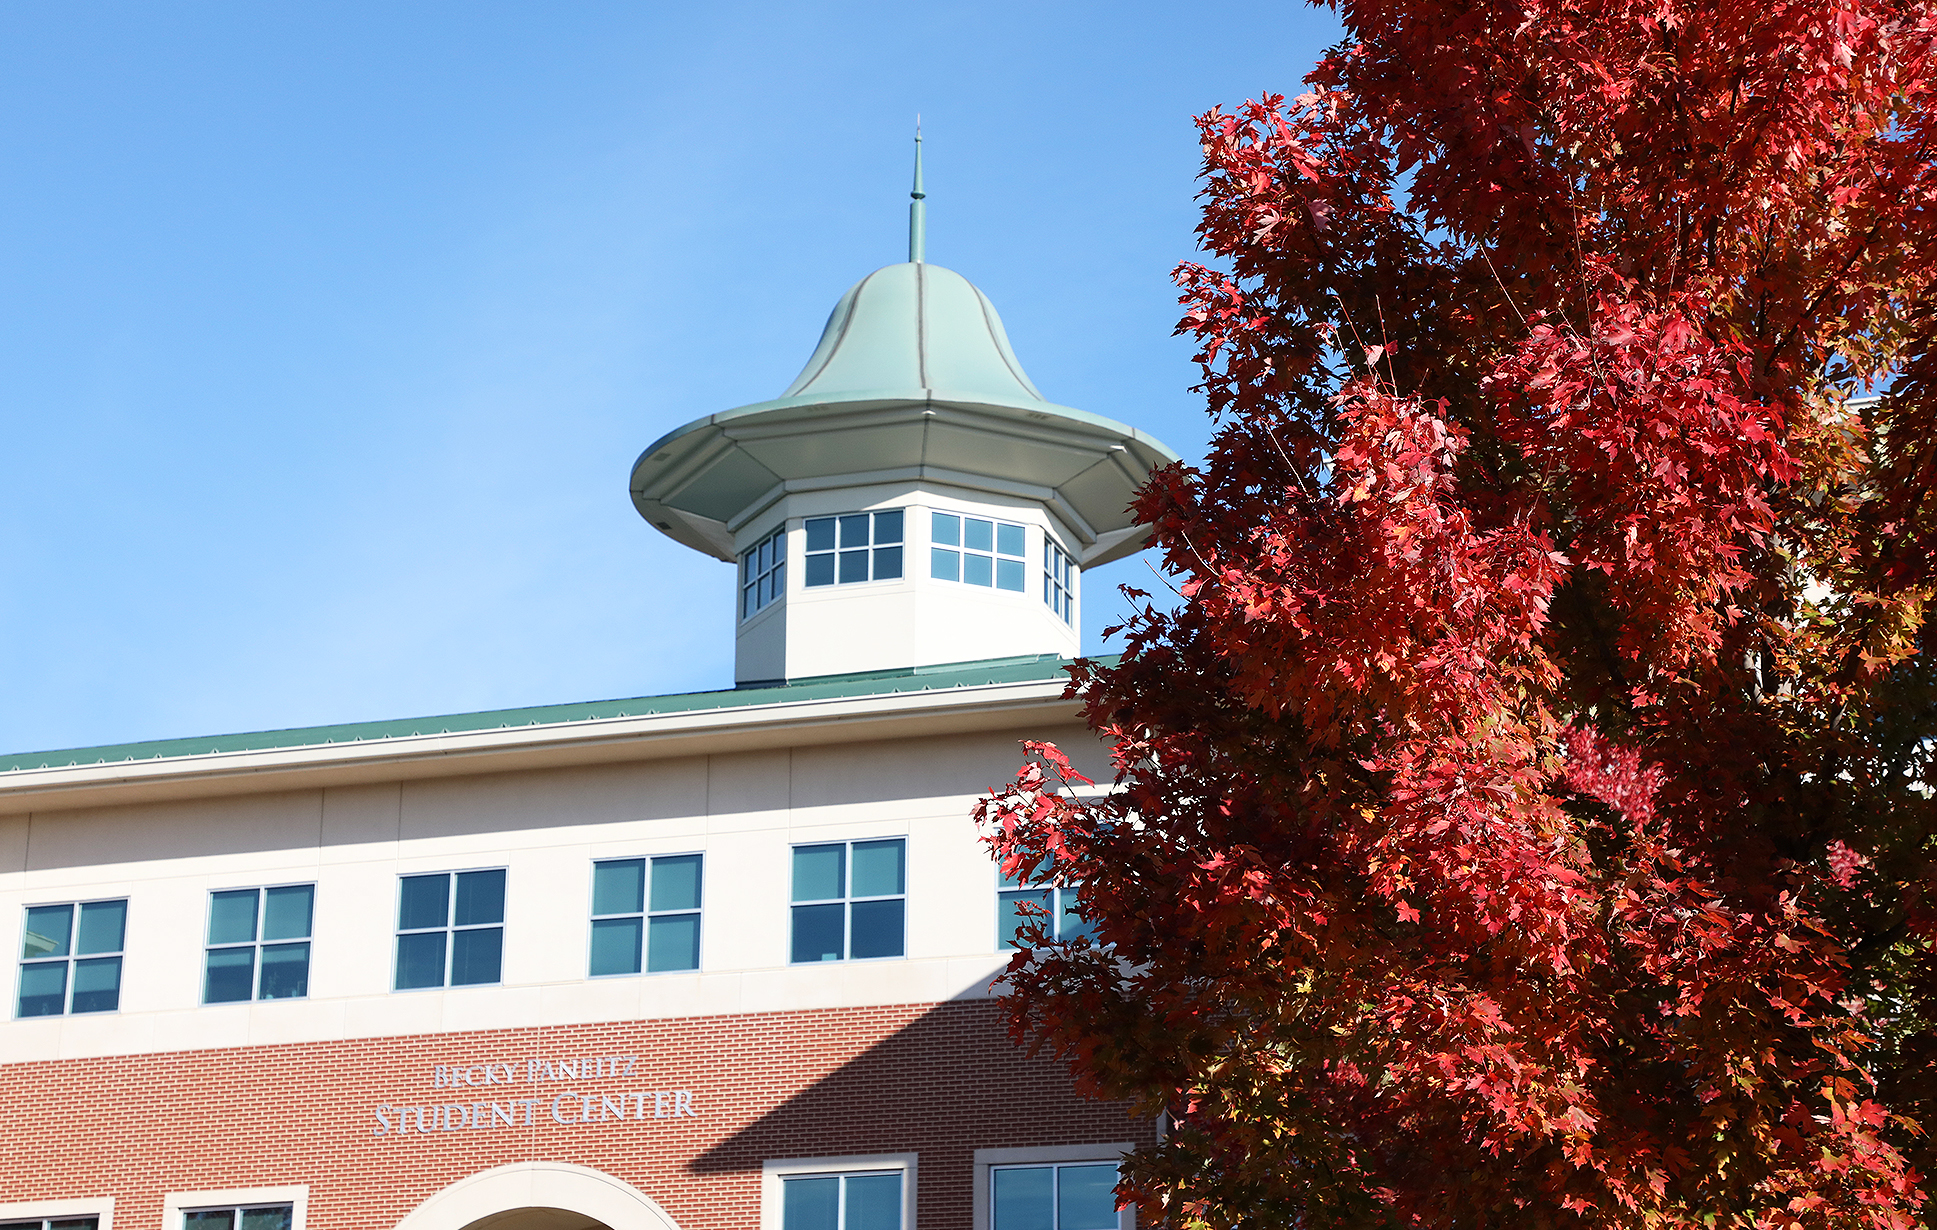 Top of the Student Center with red, fall foliage in front